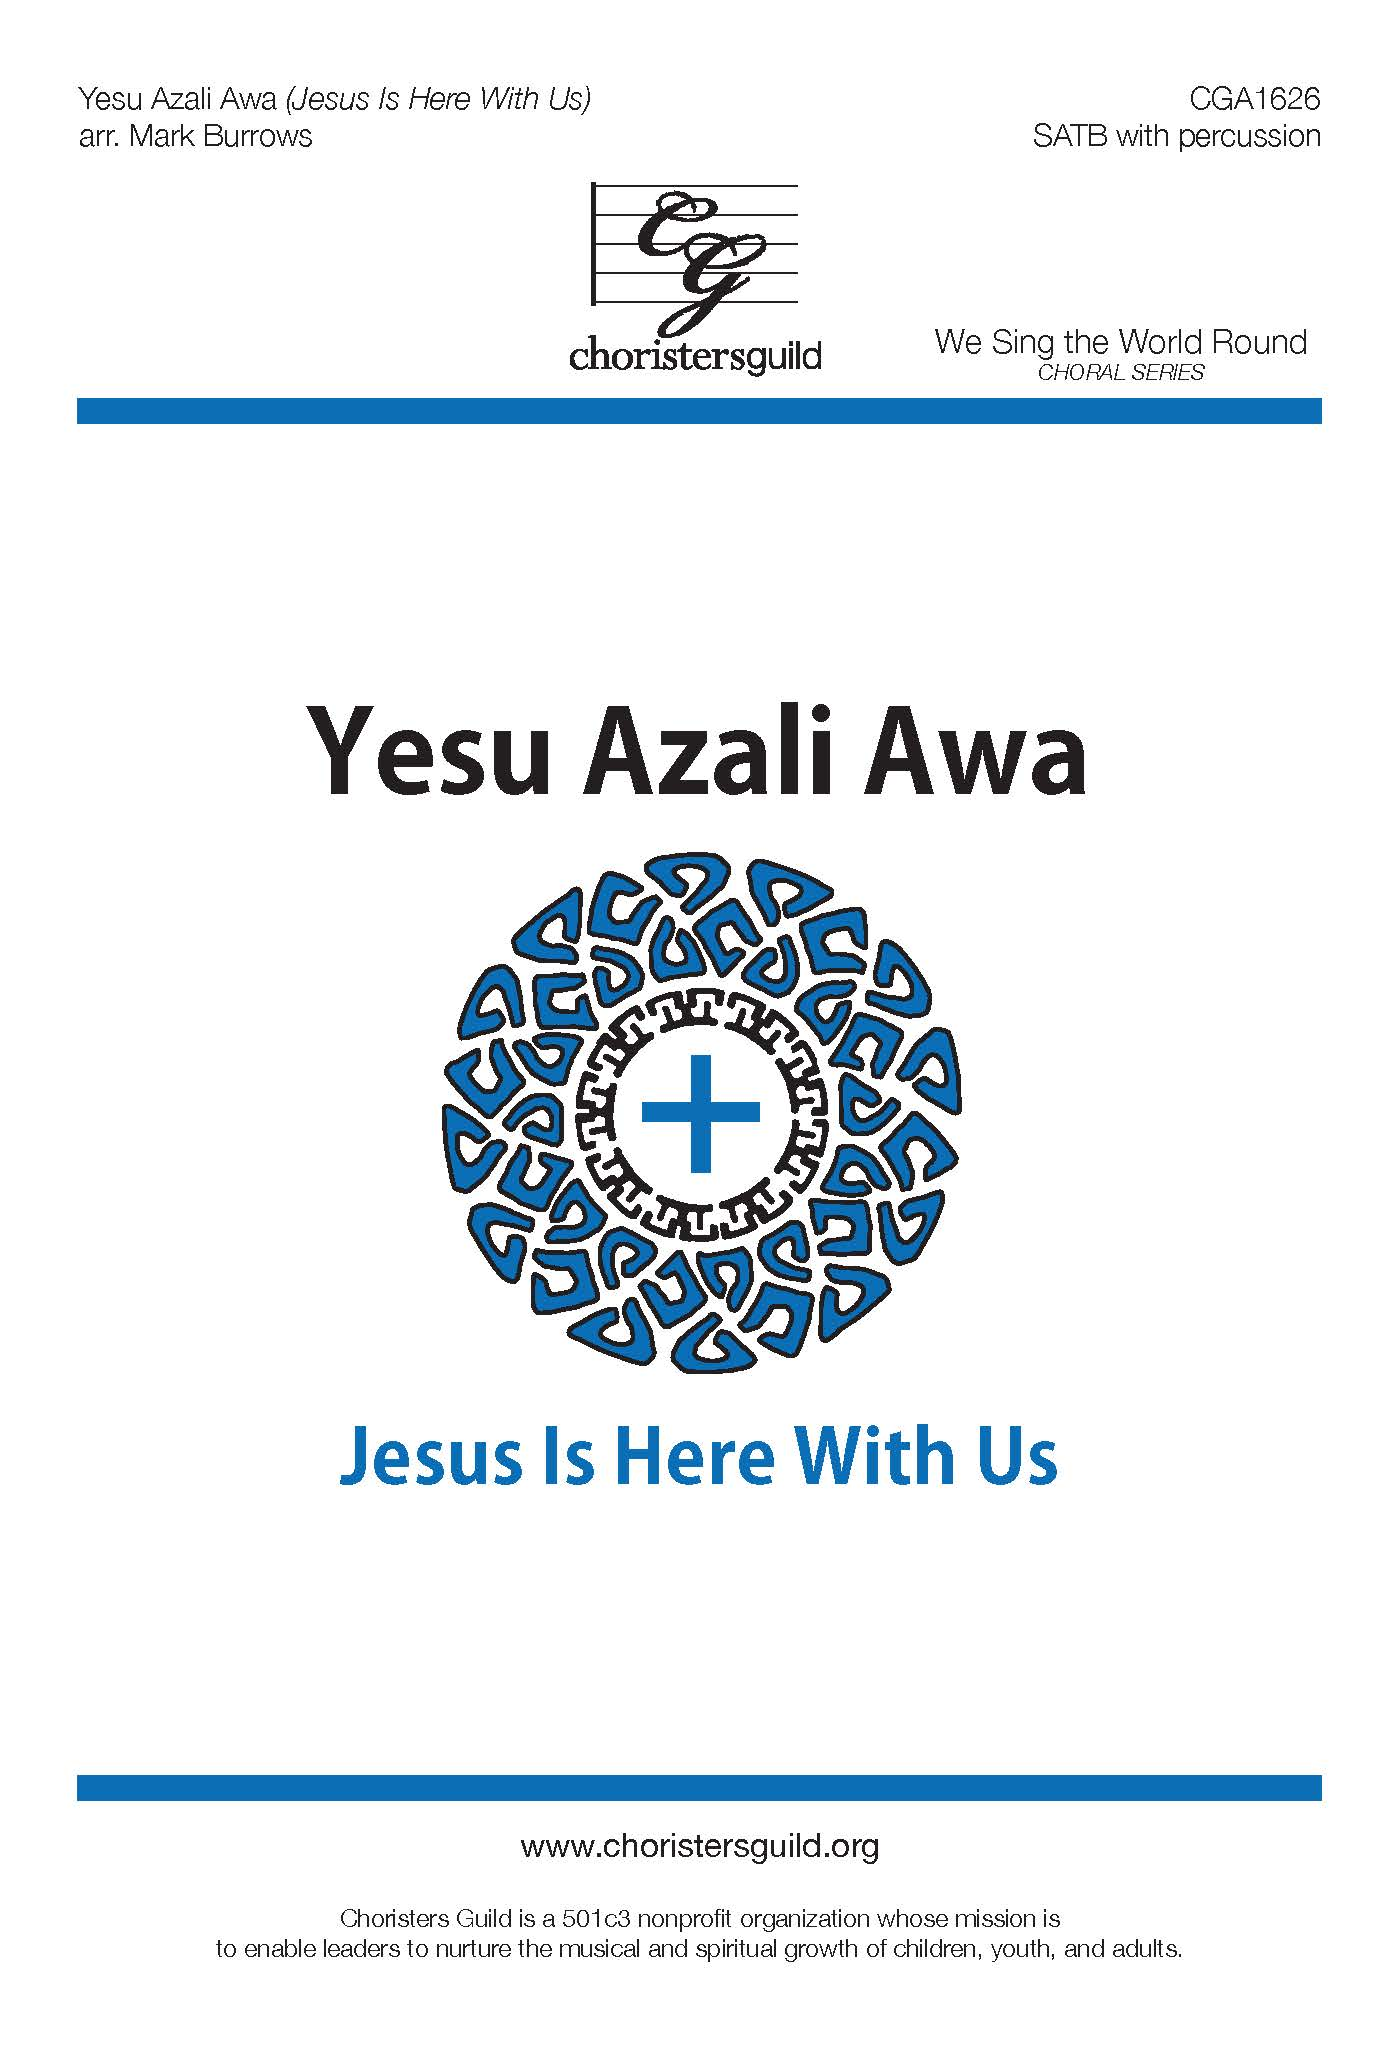 Yesu Azali Awa - SATB with percussion